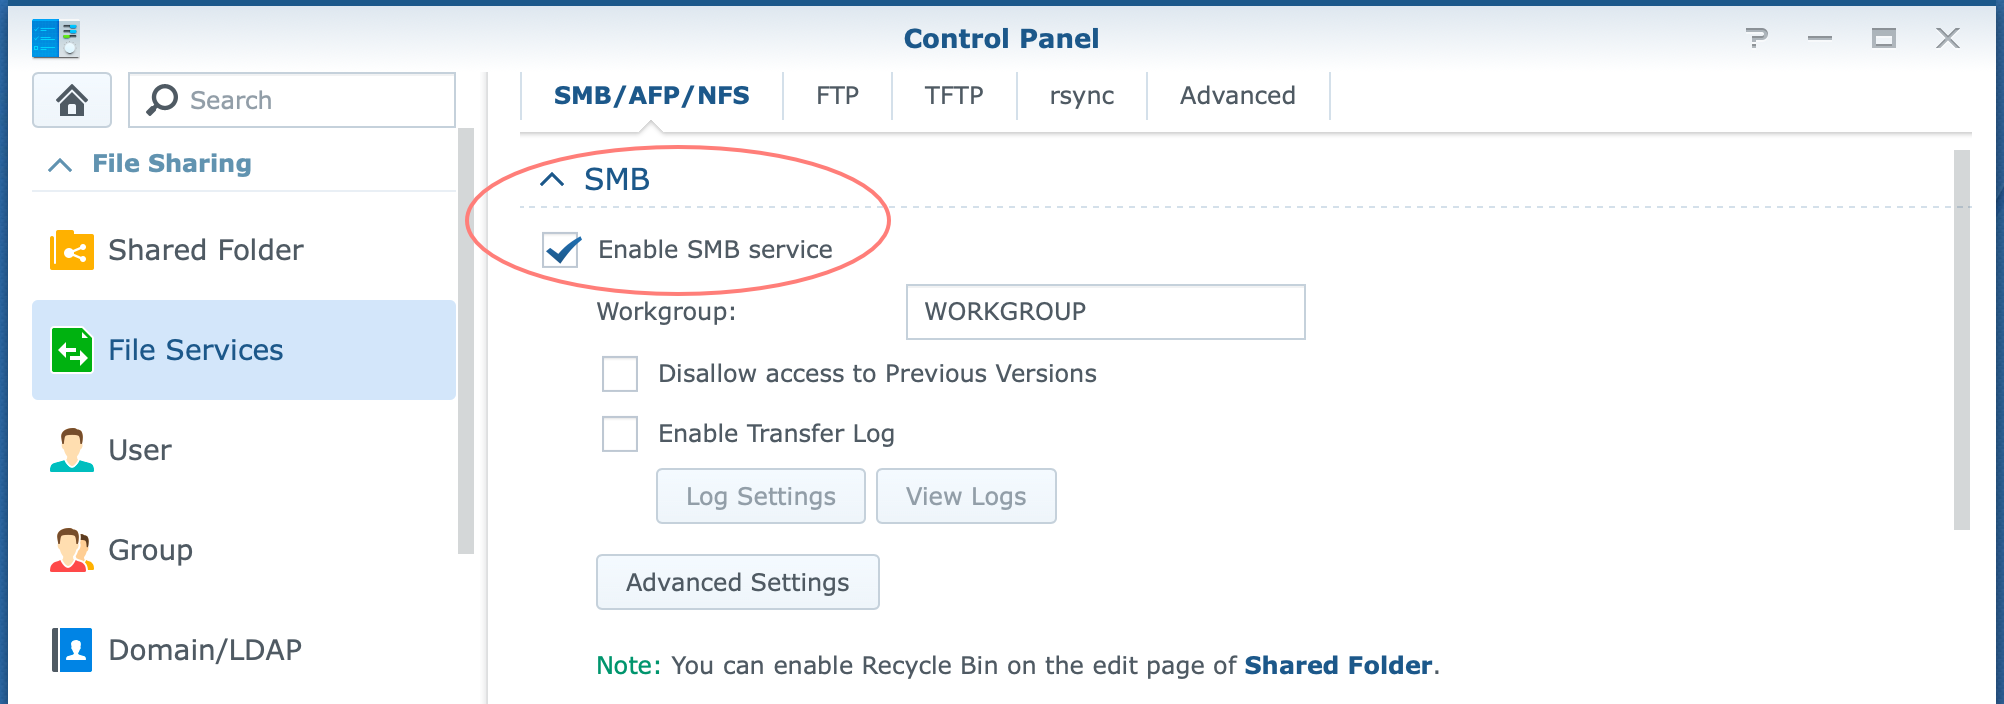 synology, control panel, file services, smb